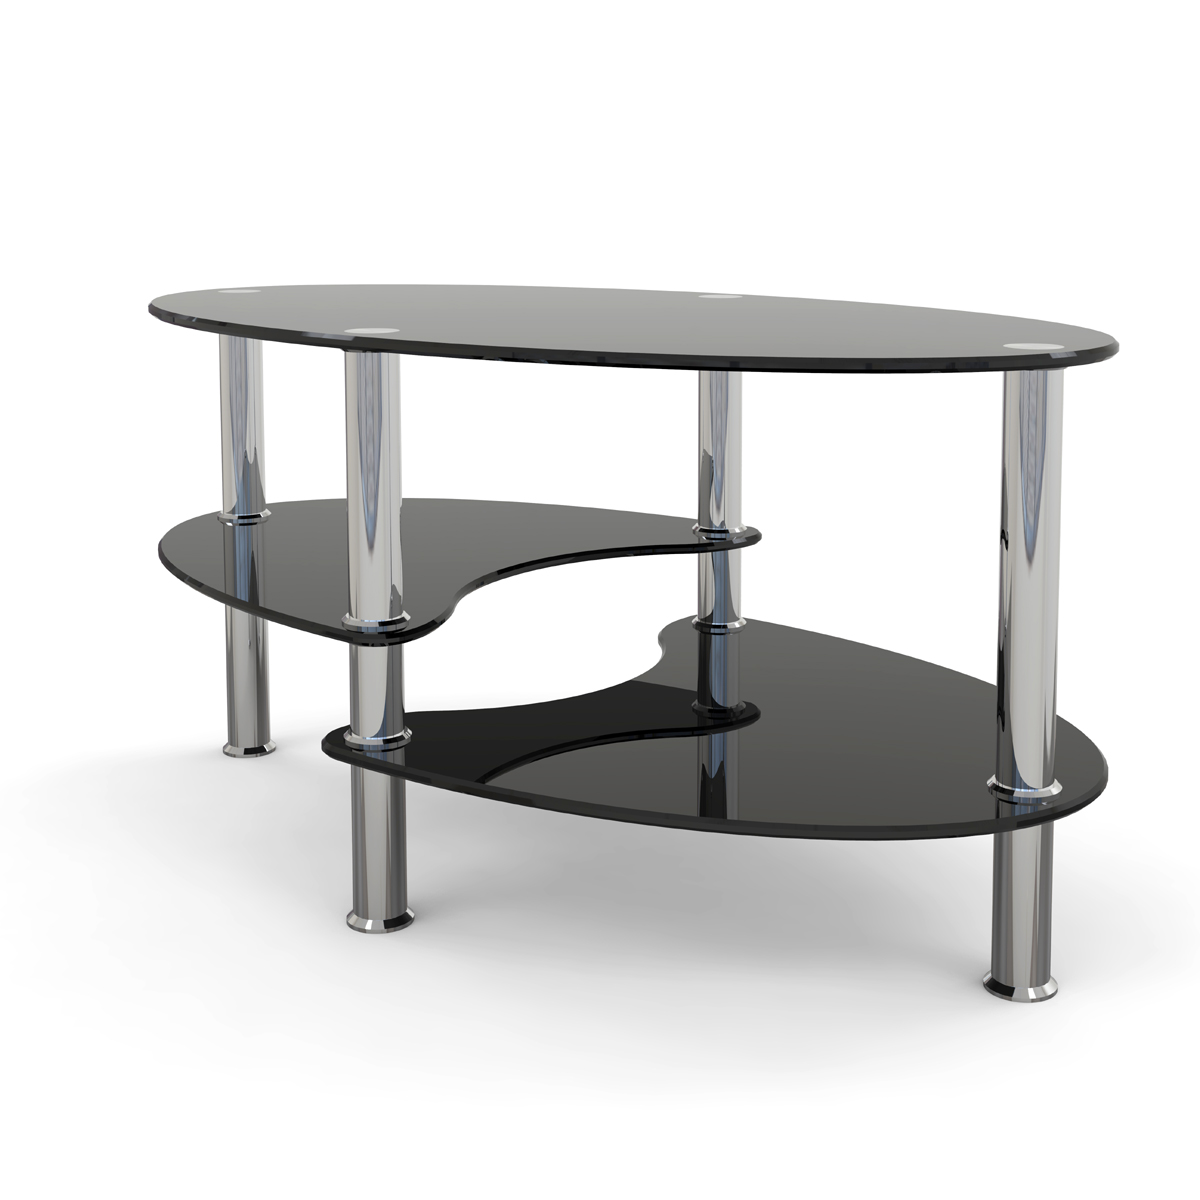 Glass Coffee Tables Gumtree: Ryan Rove Elm 38 Inch Oval Two Tier Black Glass Coffee Table